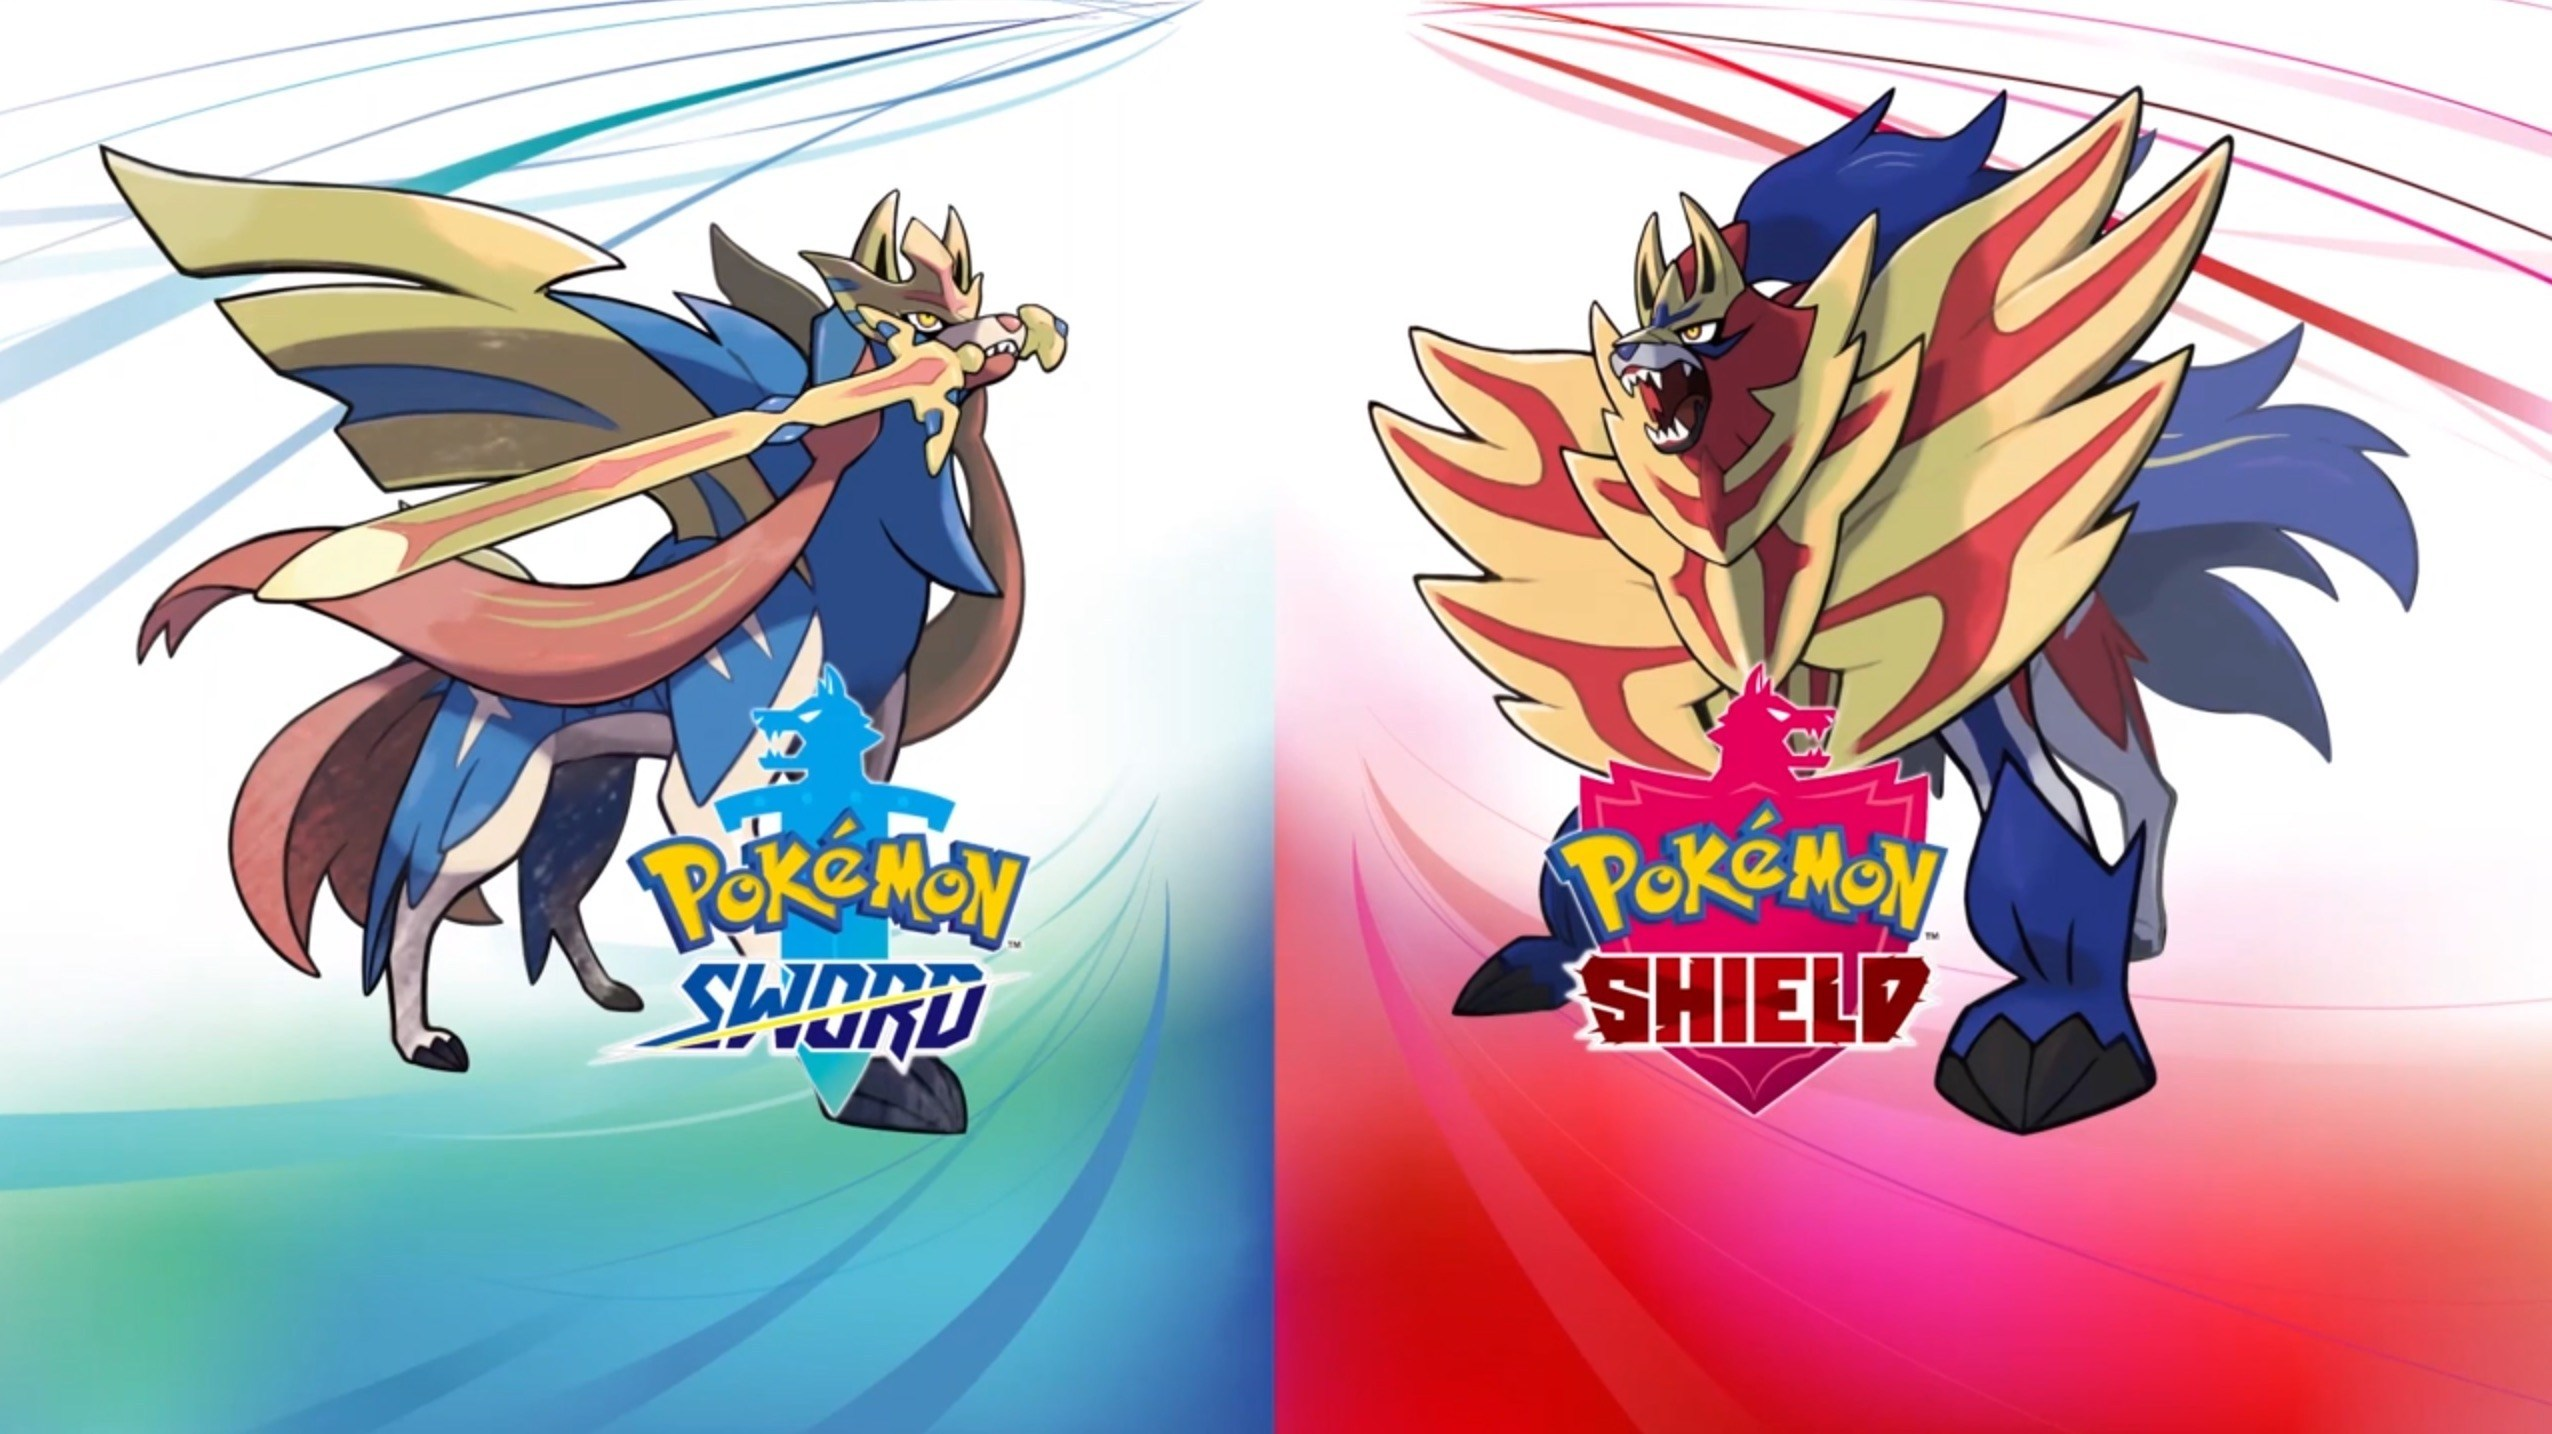 Pokemon Sword & Shield Artwork